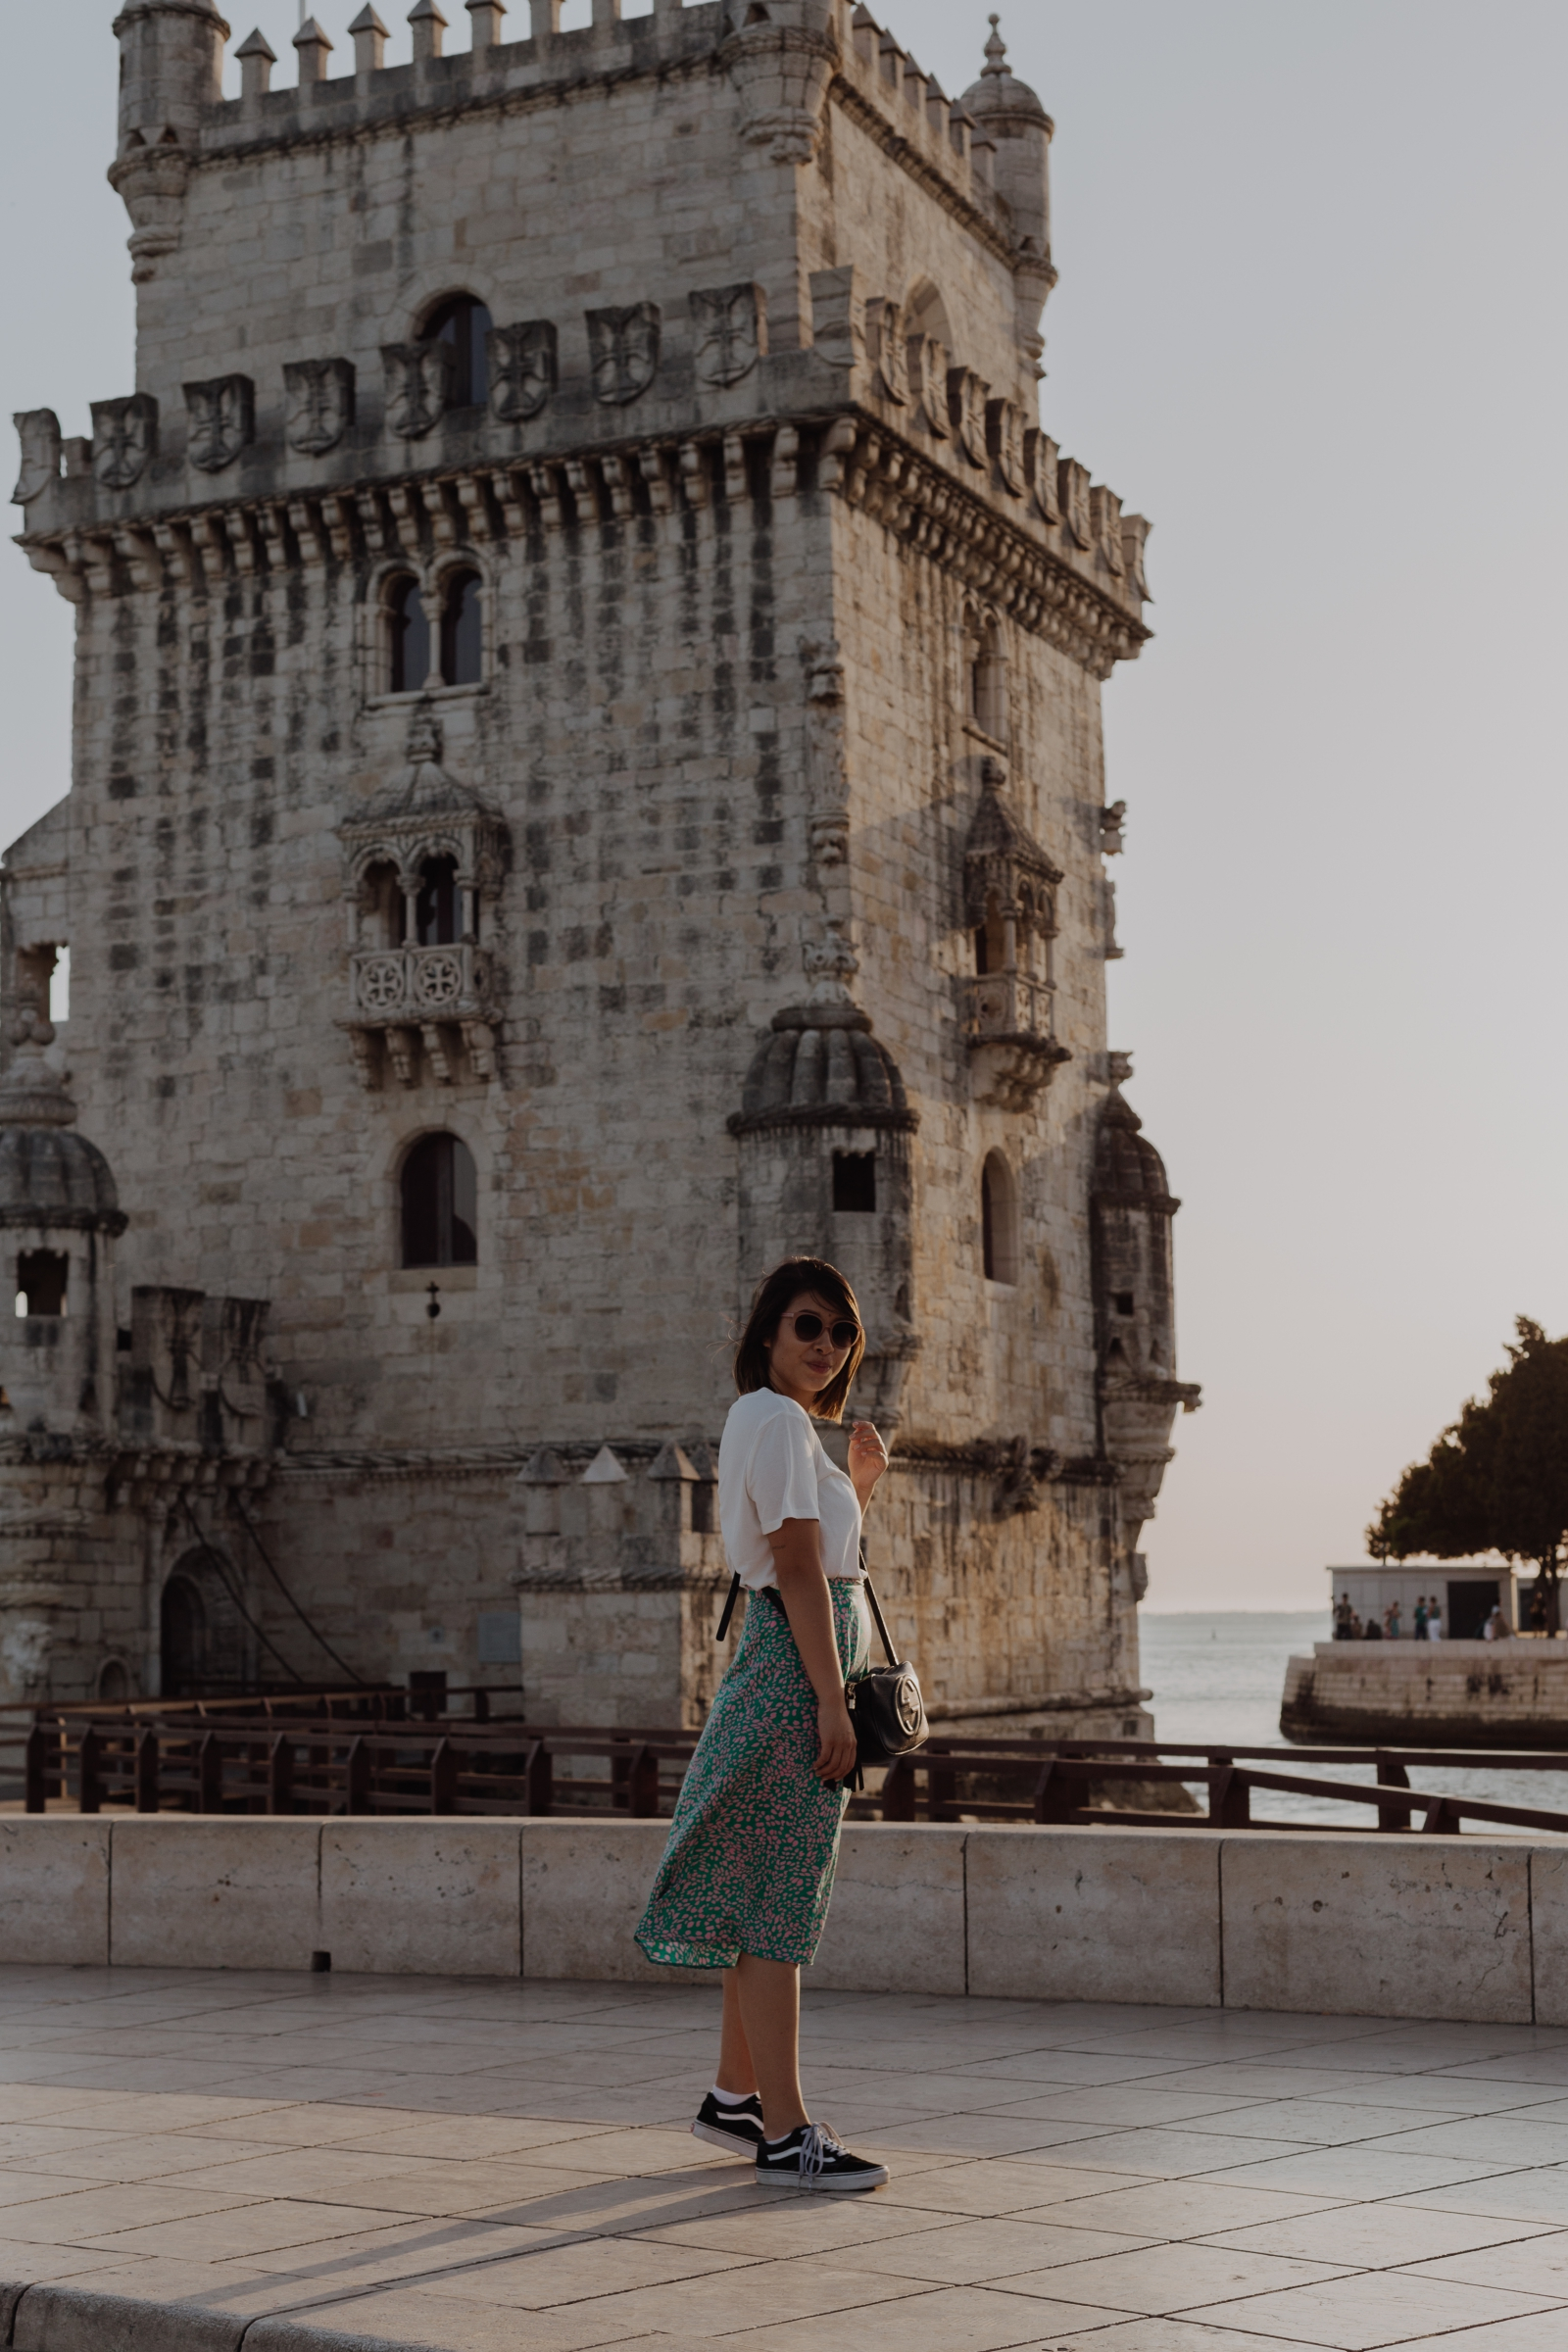 inhighfashionlaune | Lissabon Travel Guide